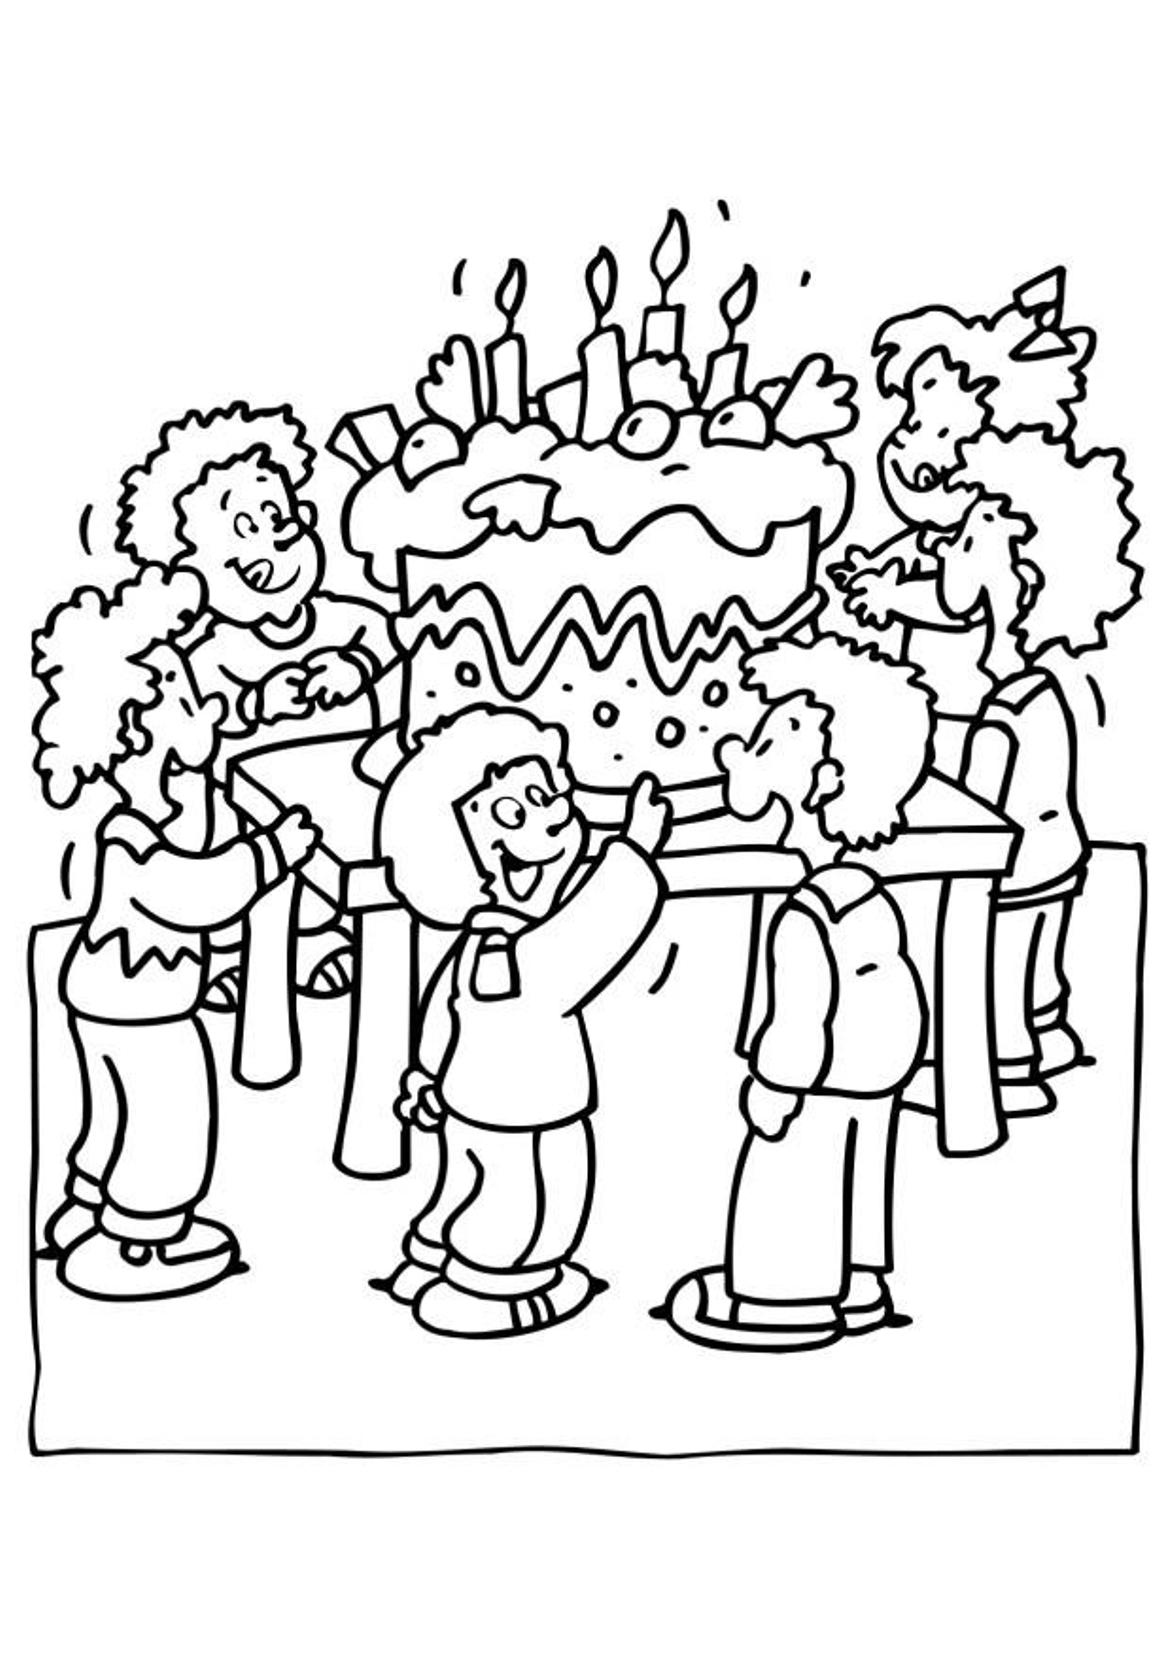 birthday party coloring ; Coloring_Pages_Birthday_Party_3